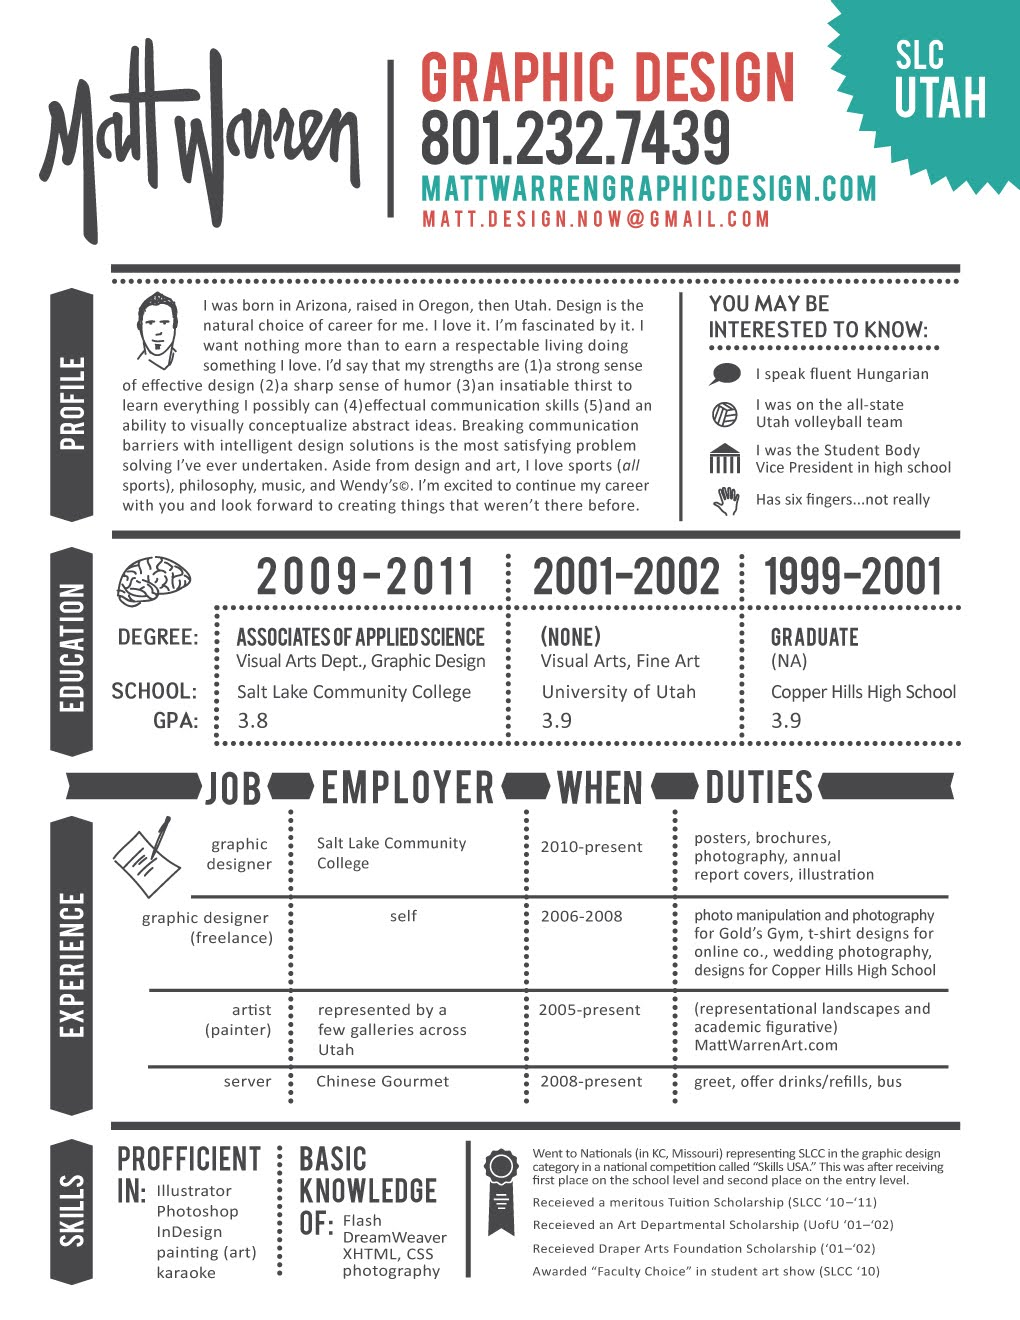 Opposenewapstandardsus  Terrific  Images About Hire Me On Pinterest  Graphic Designer Resume  With Fetching  Images About Hire Me On Pinterest  Graphic Designer Resume Resume Design And Resume With Lovely Part Time Job Resume Also Objectives For Resume Examples In Addition Basketball Coach Resume And Academic Resume Sample As Well As Microsoft Word Resume Template Download Additionally Salary Requirements On Resume From Pinterestcom With Opposenewapstandardsus  Fetching  Images About Hire Me On Pinterest  Graphic Designer Resume  With Lovely  Images About Hire Me On Pinterest  Graphic Designer Resume Resume Design And Resume And Terrific Part Time Job Resume Also Objectives For Resume Examples In Addition Basketball Coach Resume From Pinterestcom